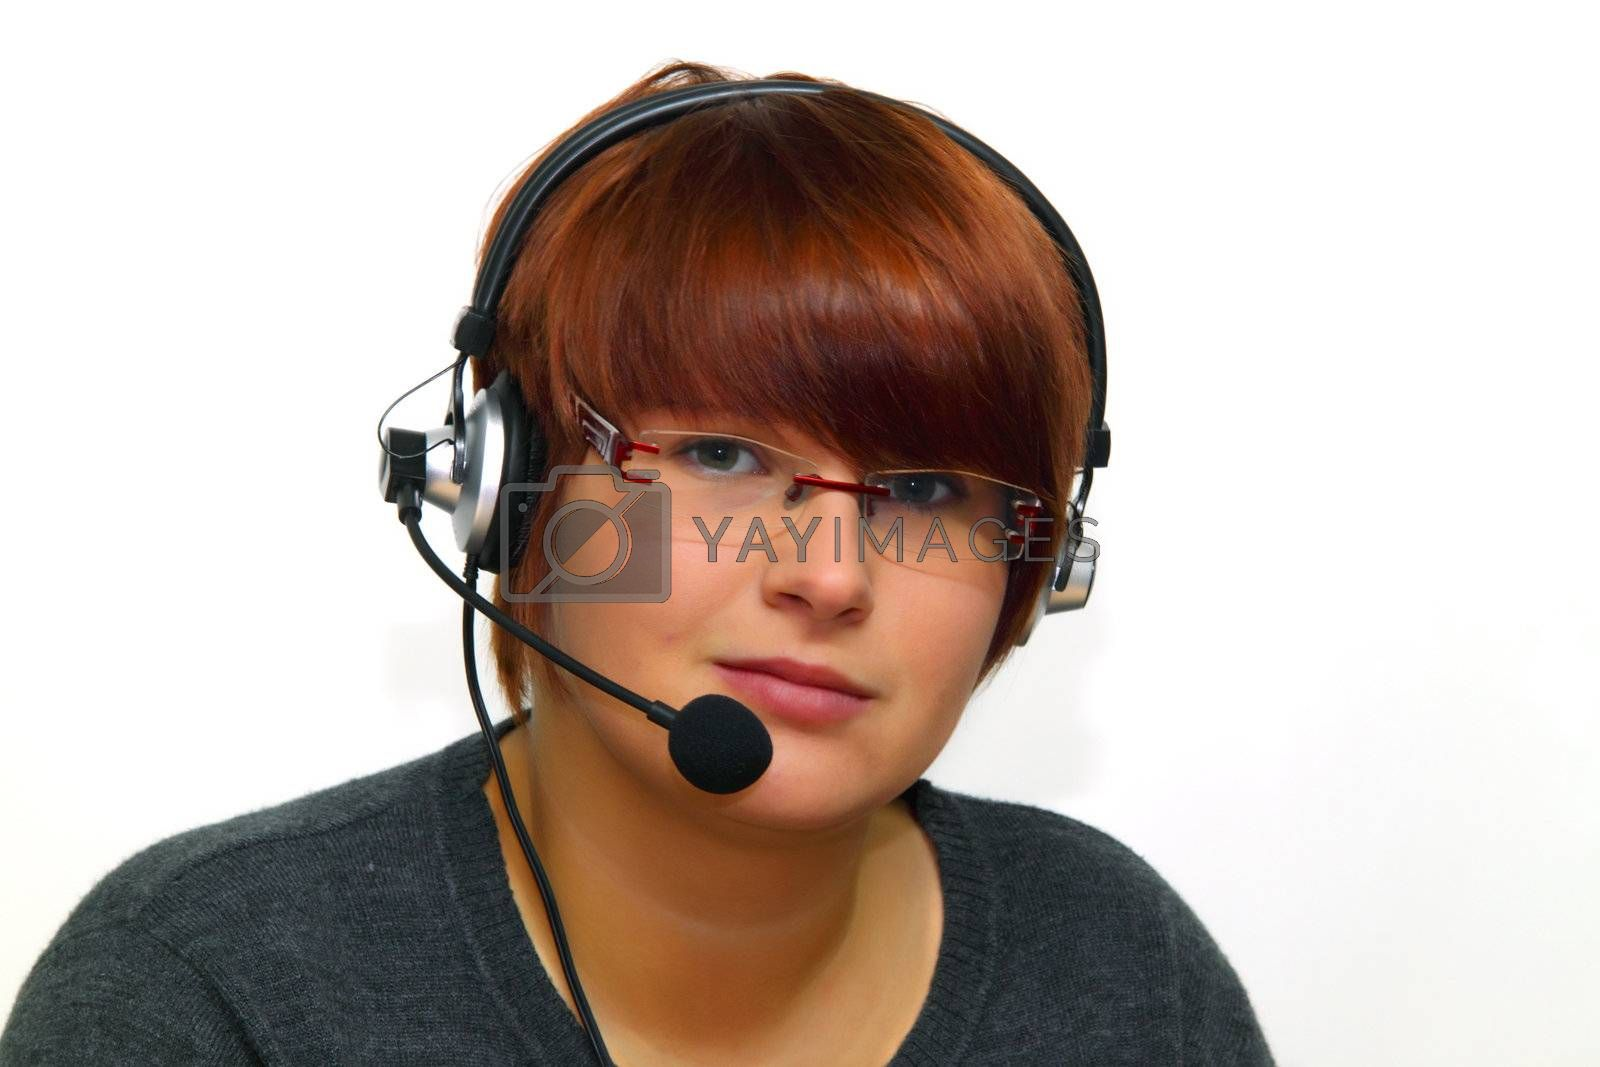 Portrait of young woman with headset, on white background, smiling.